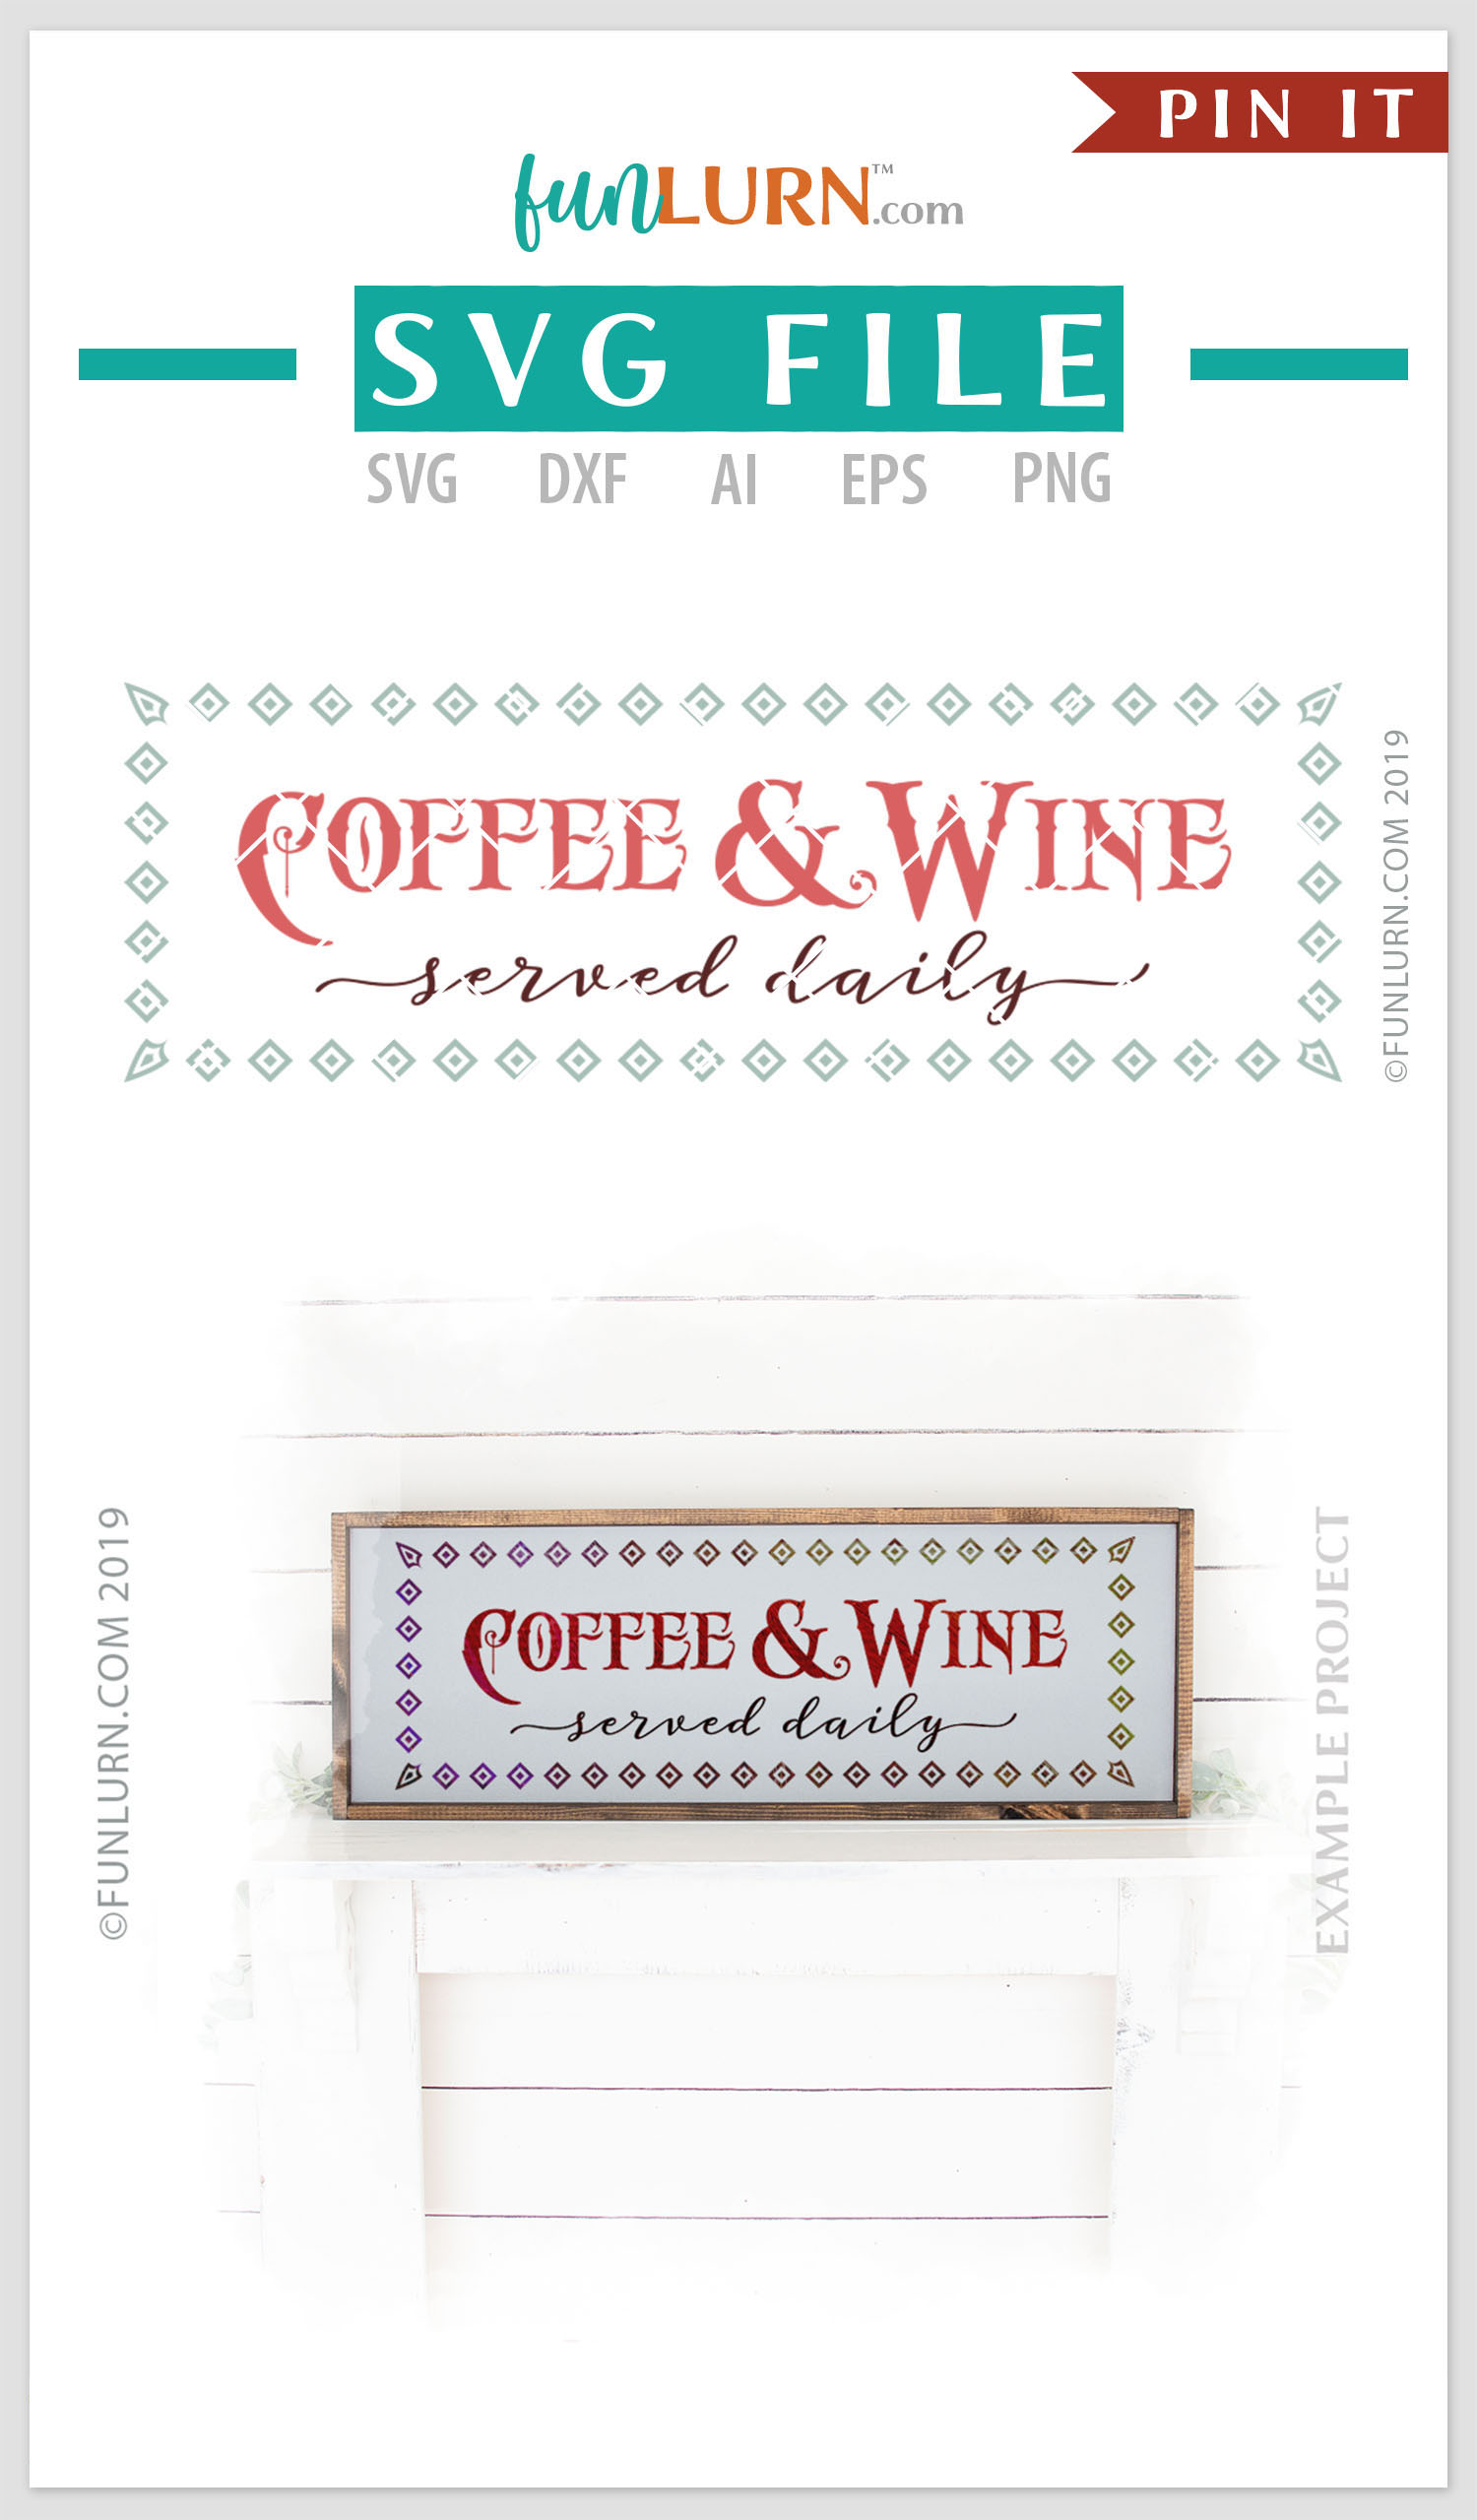 Coffee and Wine Served Daily SVG Cut File example image 3